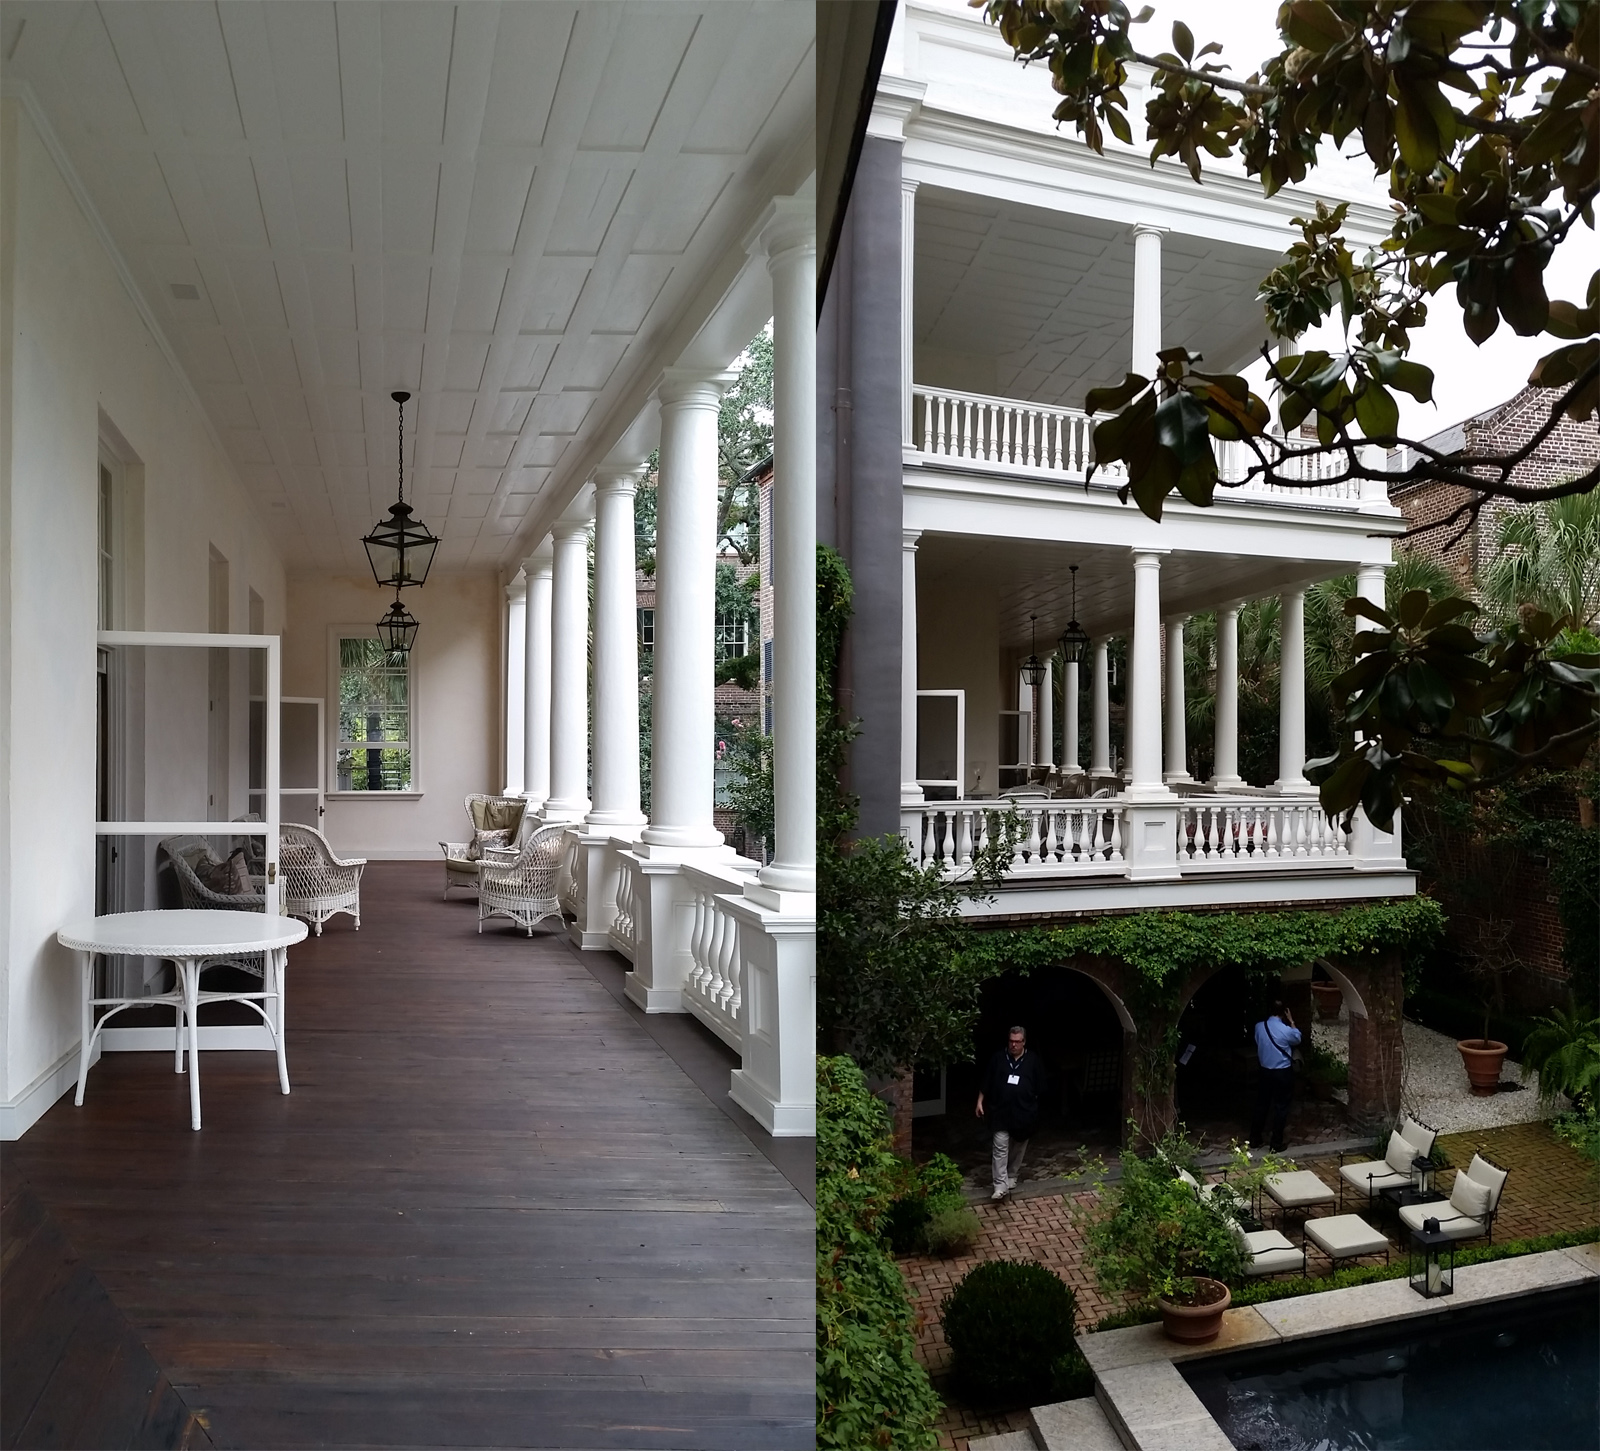 Residential Design Inspiration: The Porch